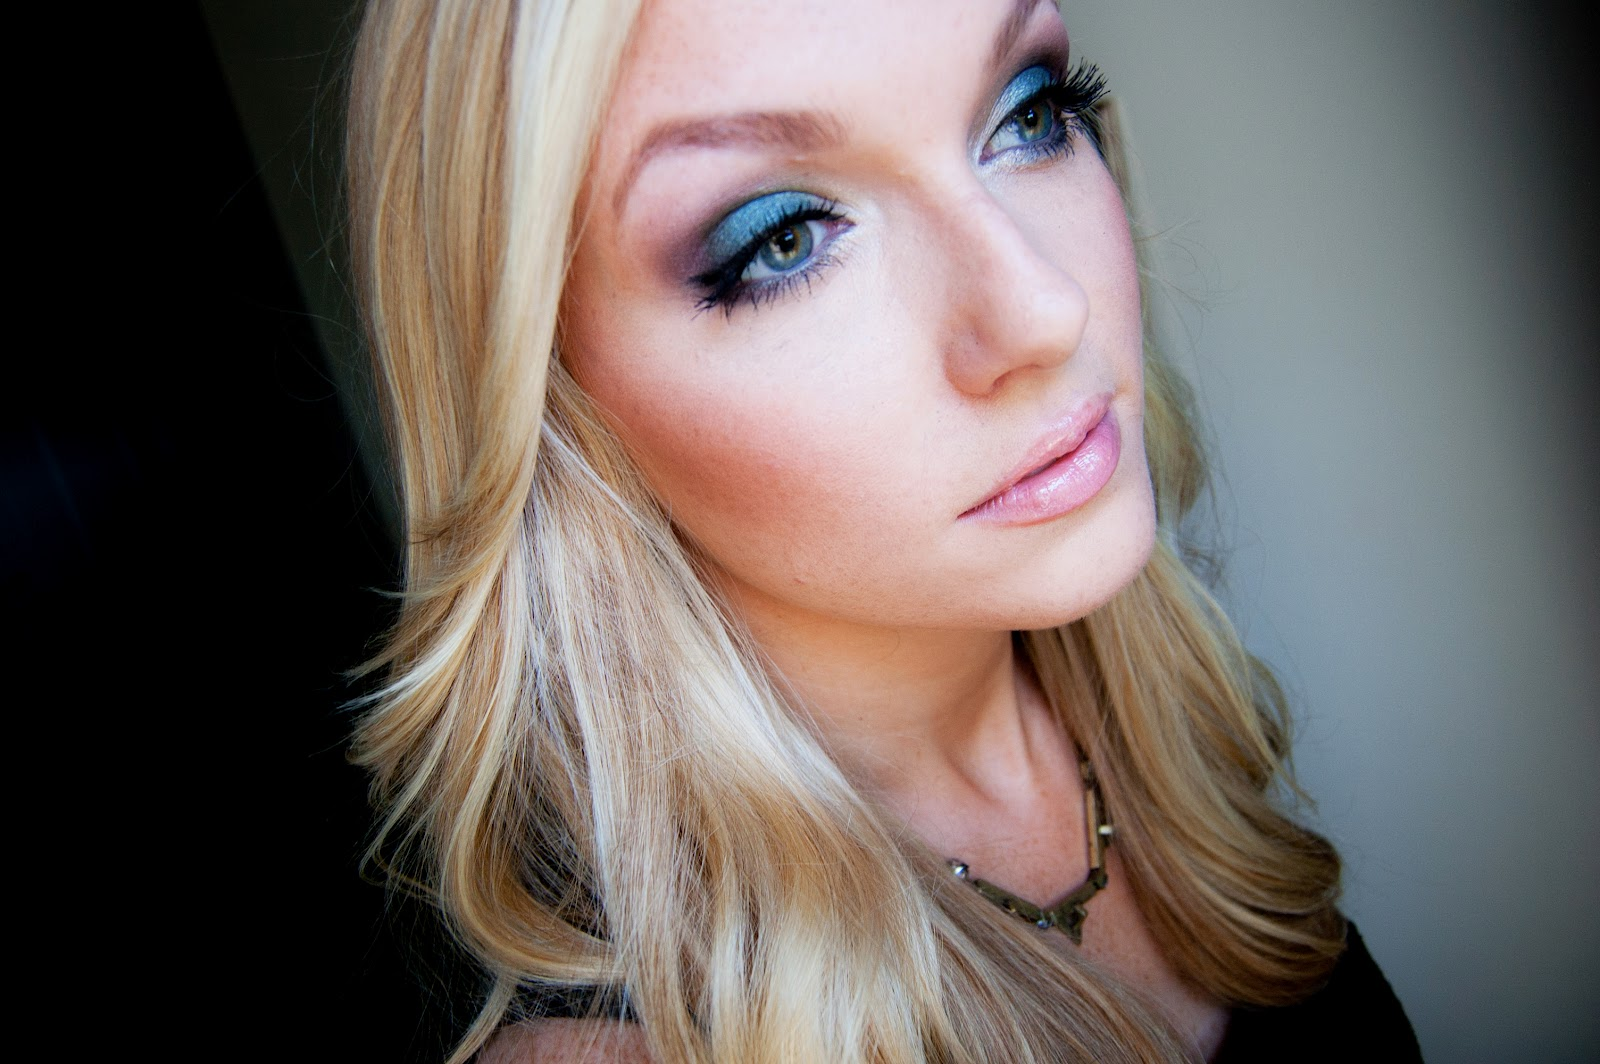 Makeup by alli fall makeup tutorial jewel tones - What are jewel tones ...